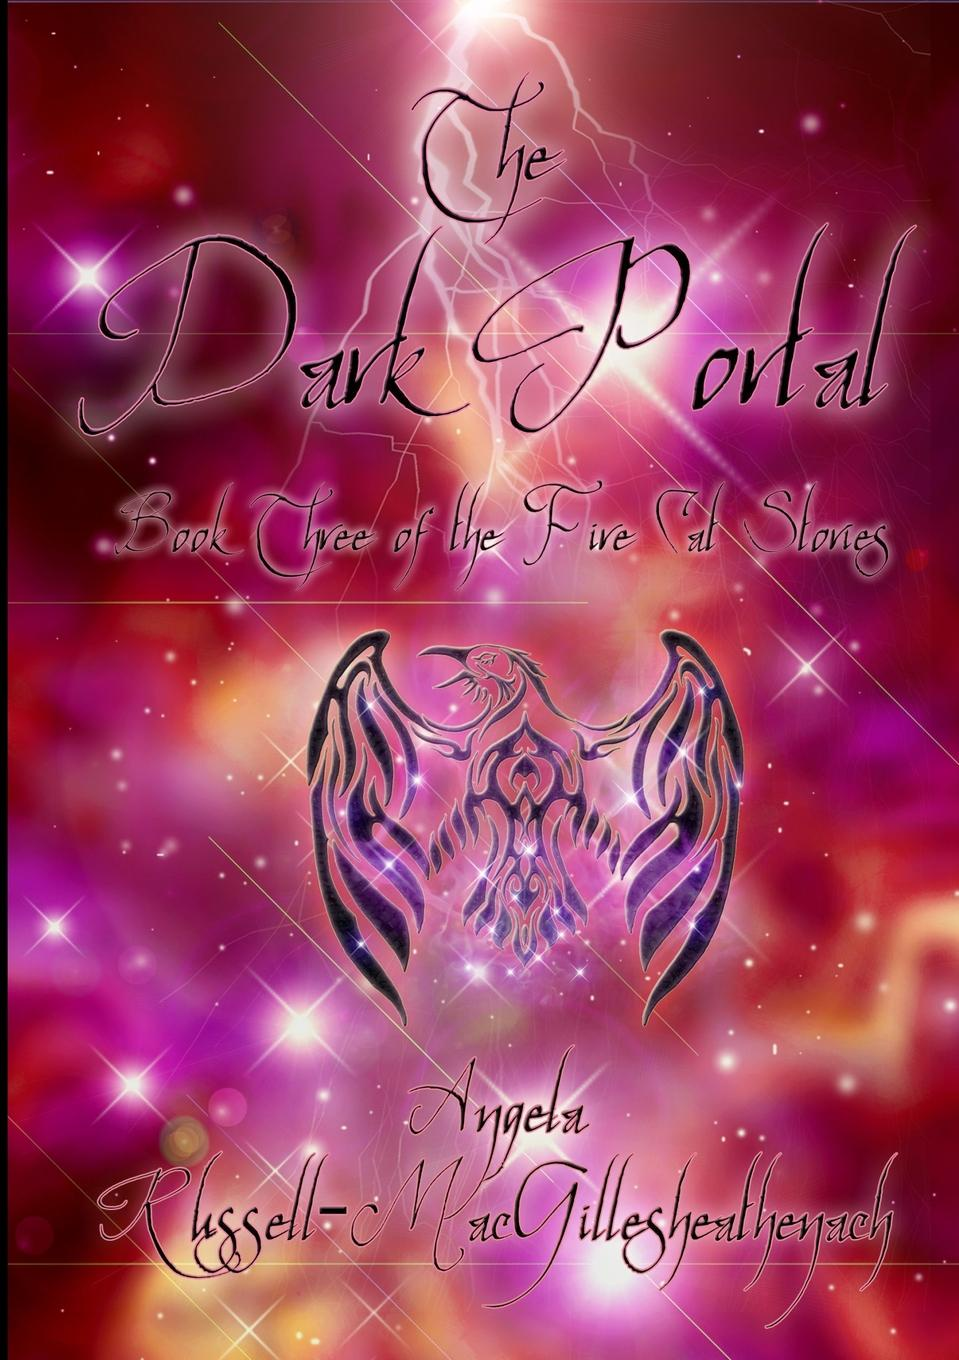 Angela Russell-MacGillesheathenach The Dark Portal - Book Three of the Fire Cat Stories the mystery of the fire dragon